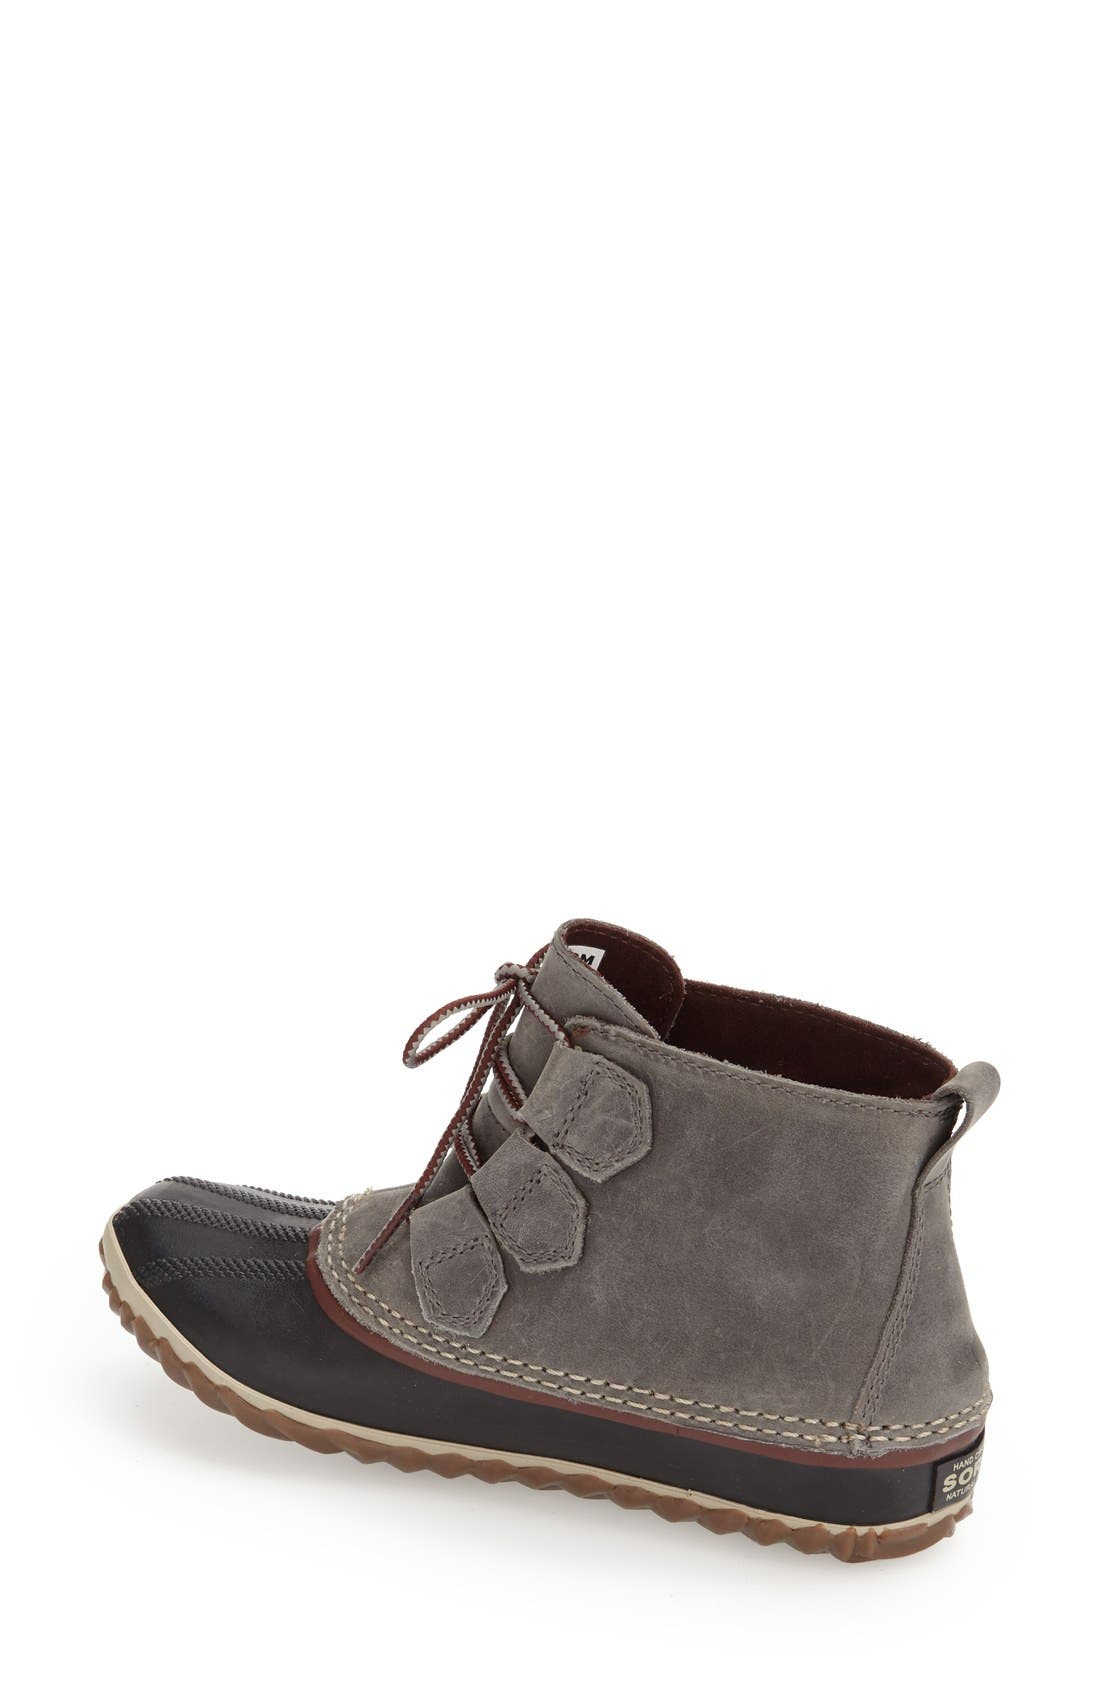 'Out N About' Leather Boot,                             Alternate thumbnail 17, color,